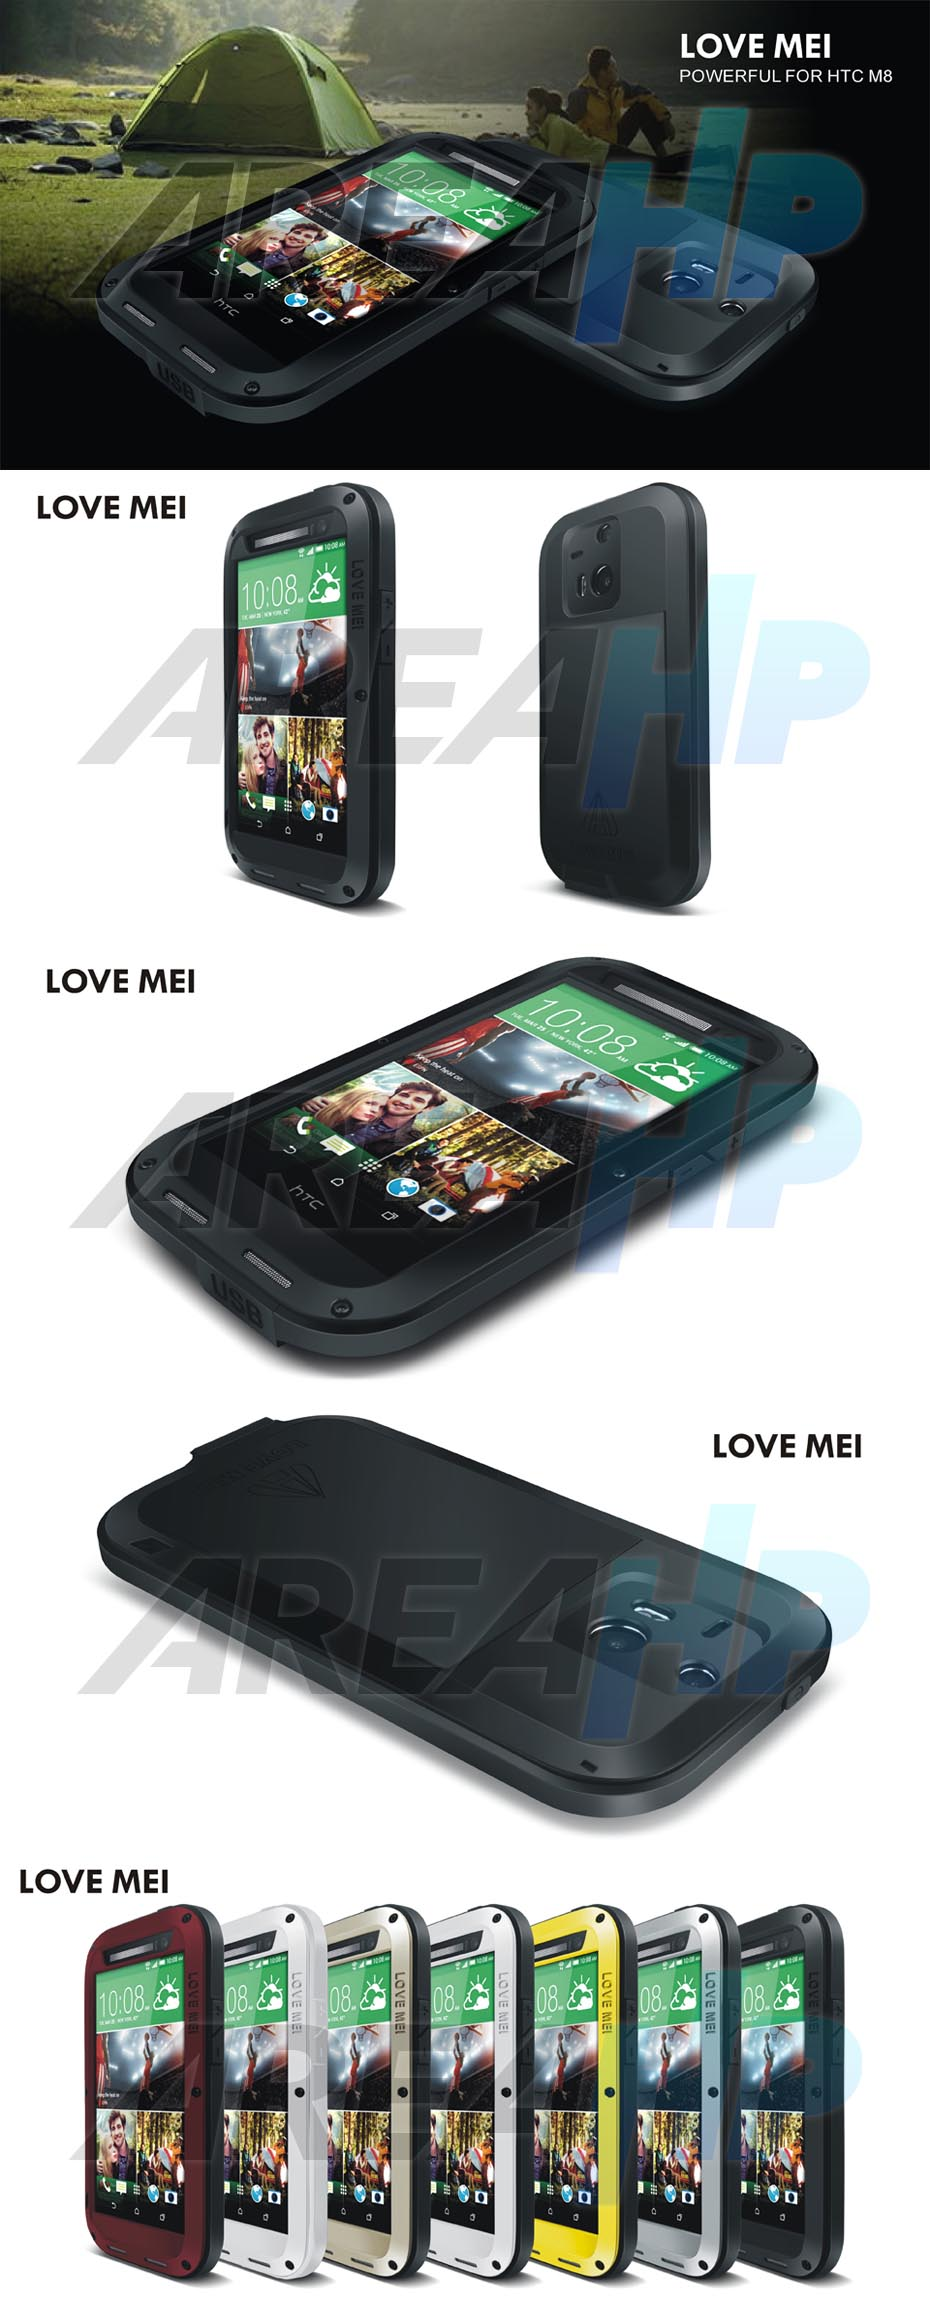 Love Mei Powerful Case for HTC One M8 Overview